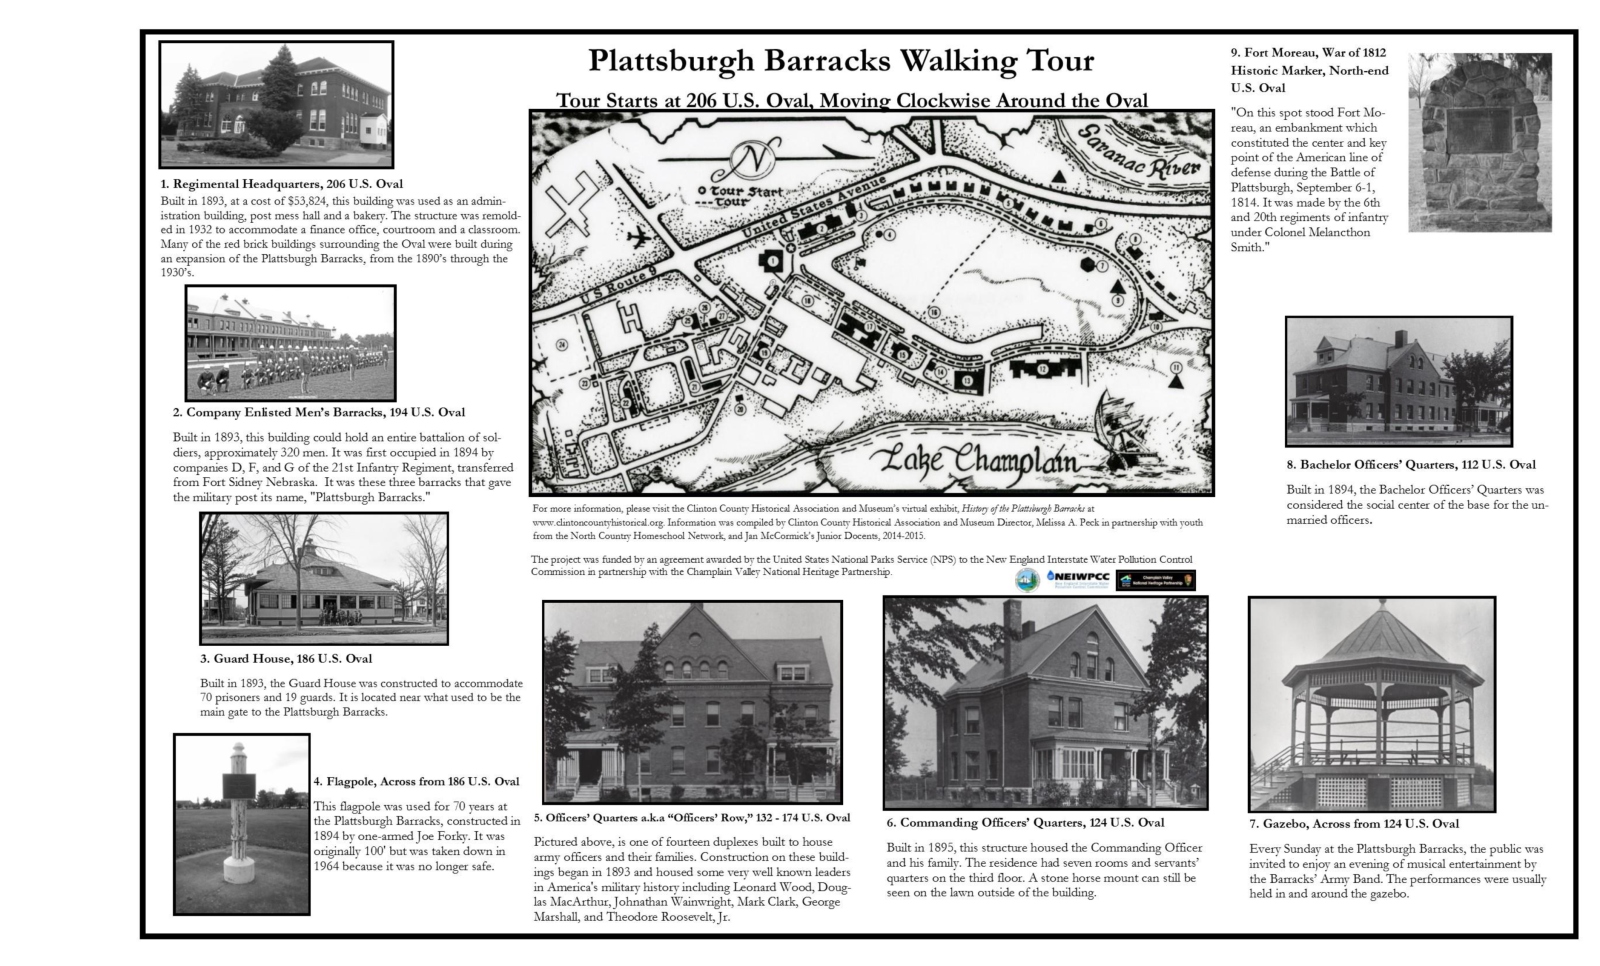 Plattsburgh-Barracks-Walking-Tour-1